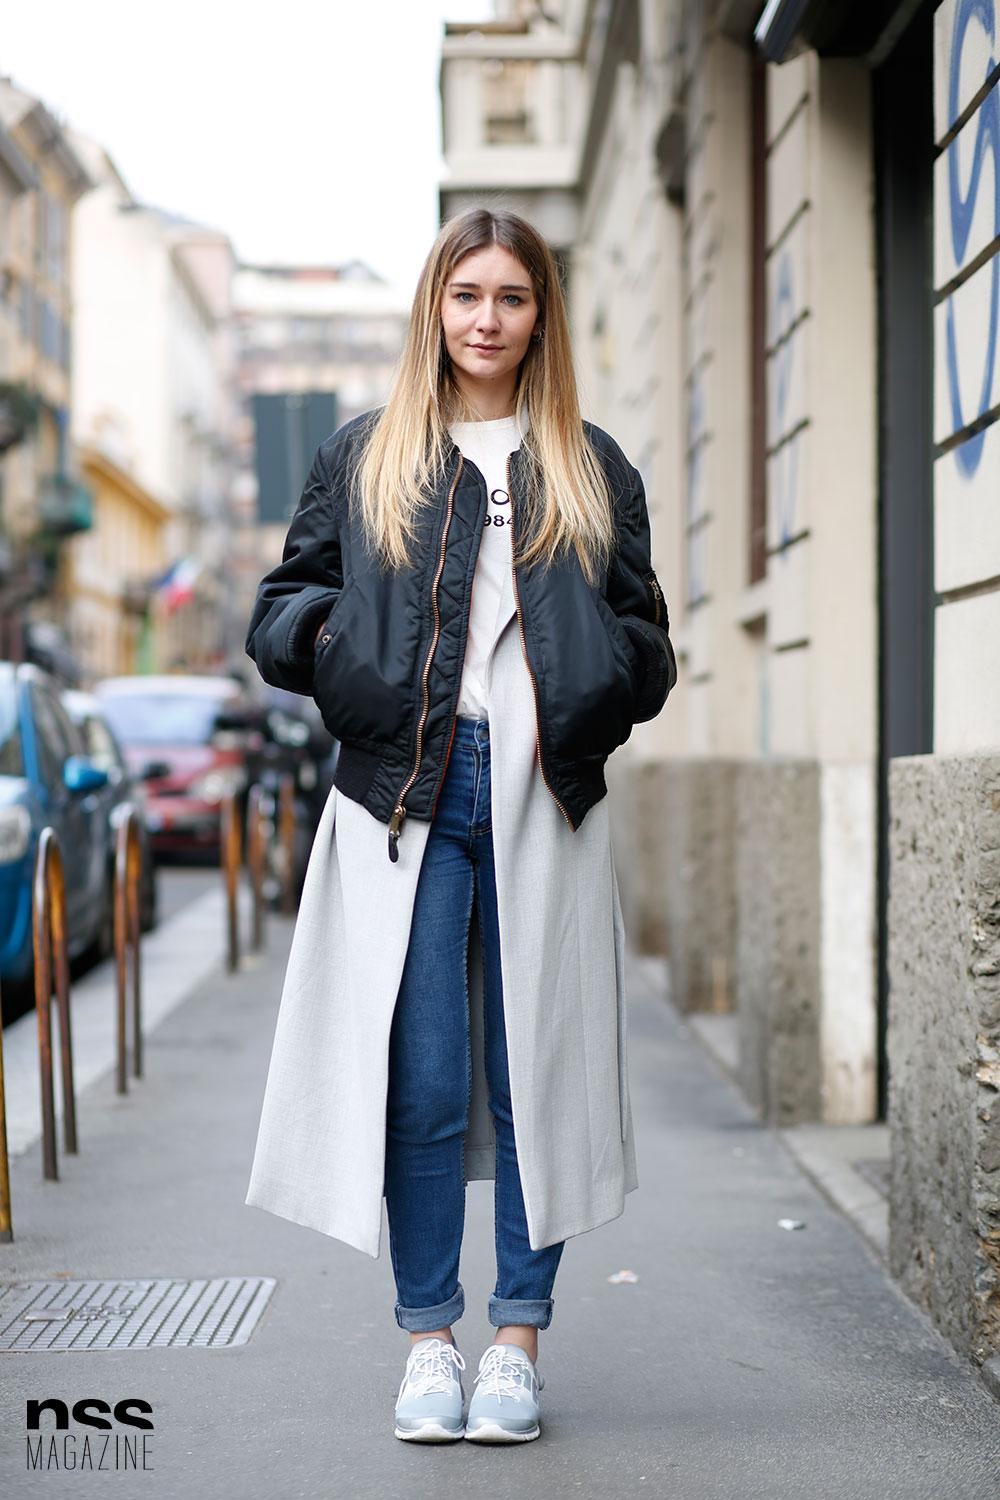 look, chiara, italy, new york, fashion, it girl, trend, fashion, street style, blog